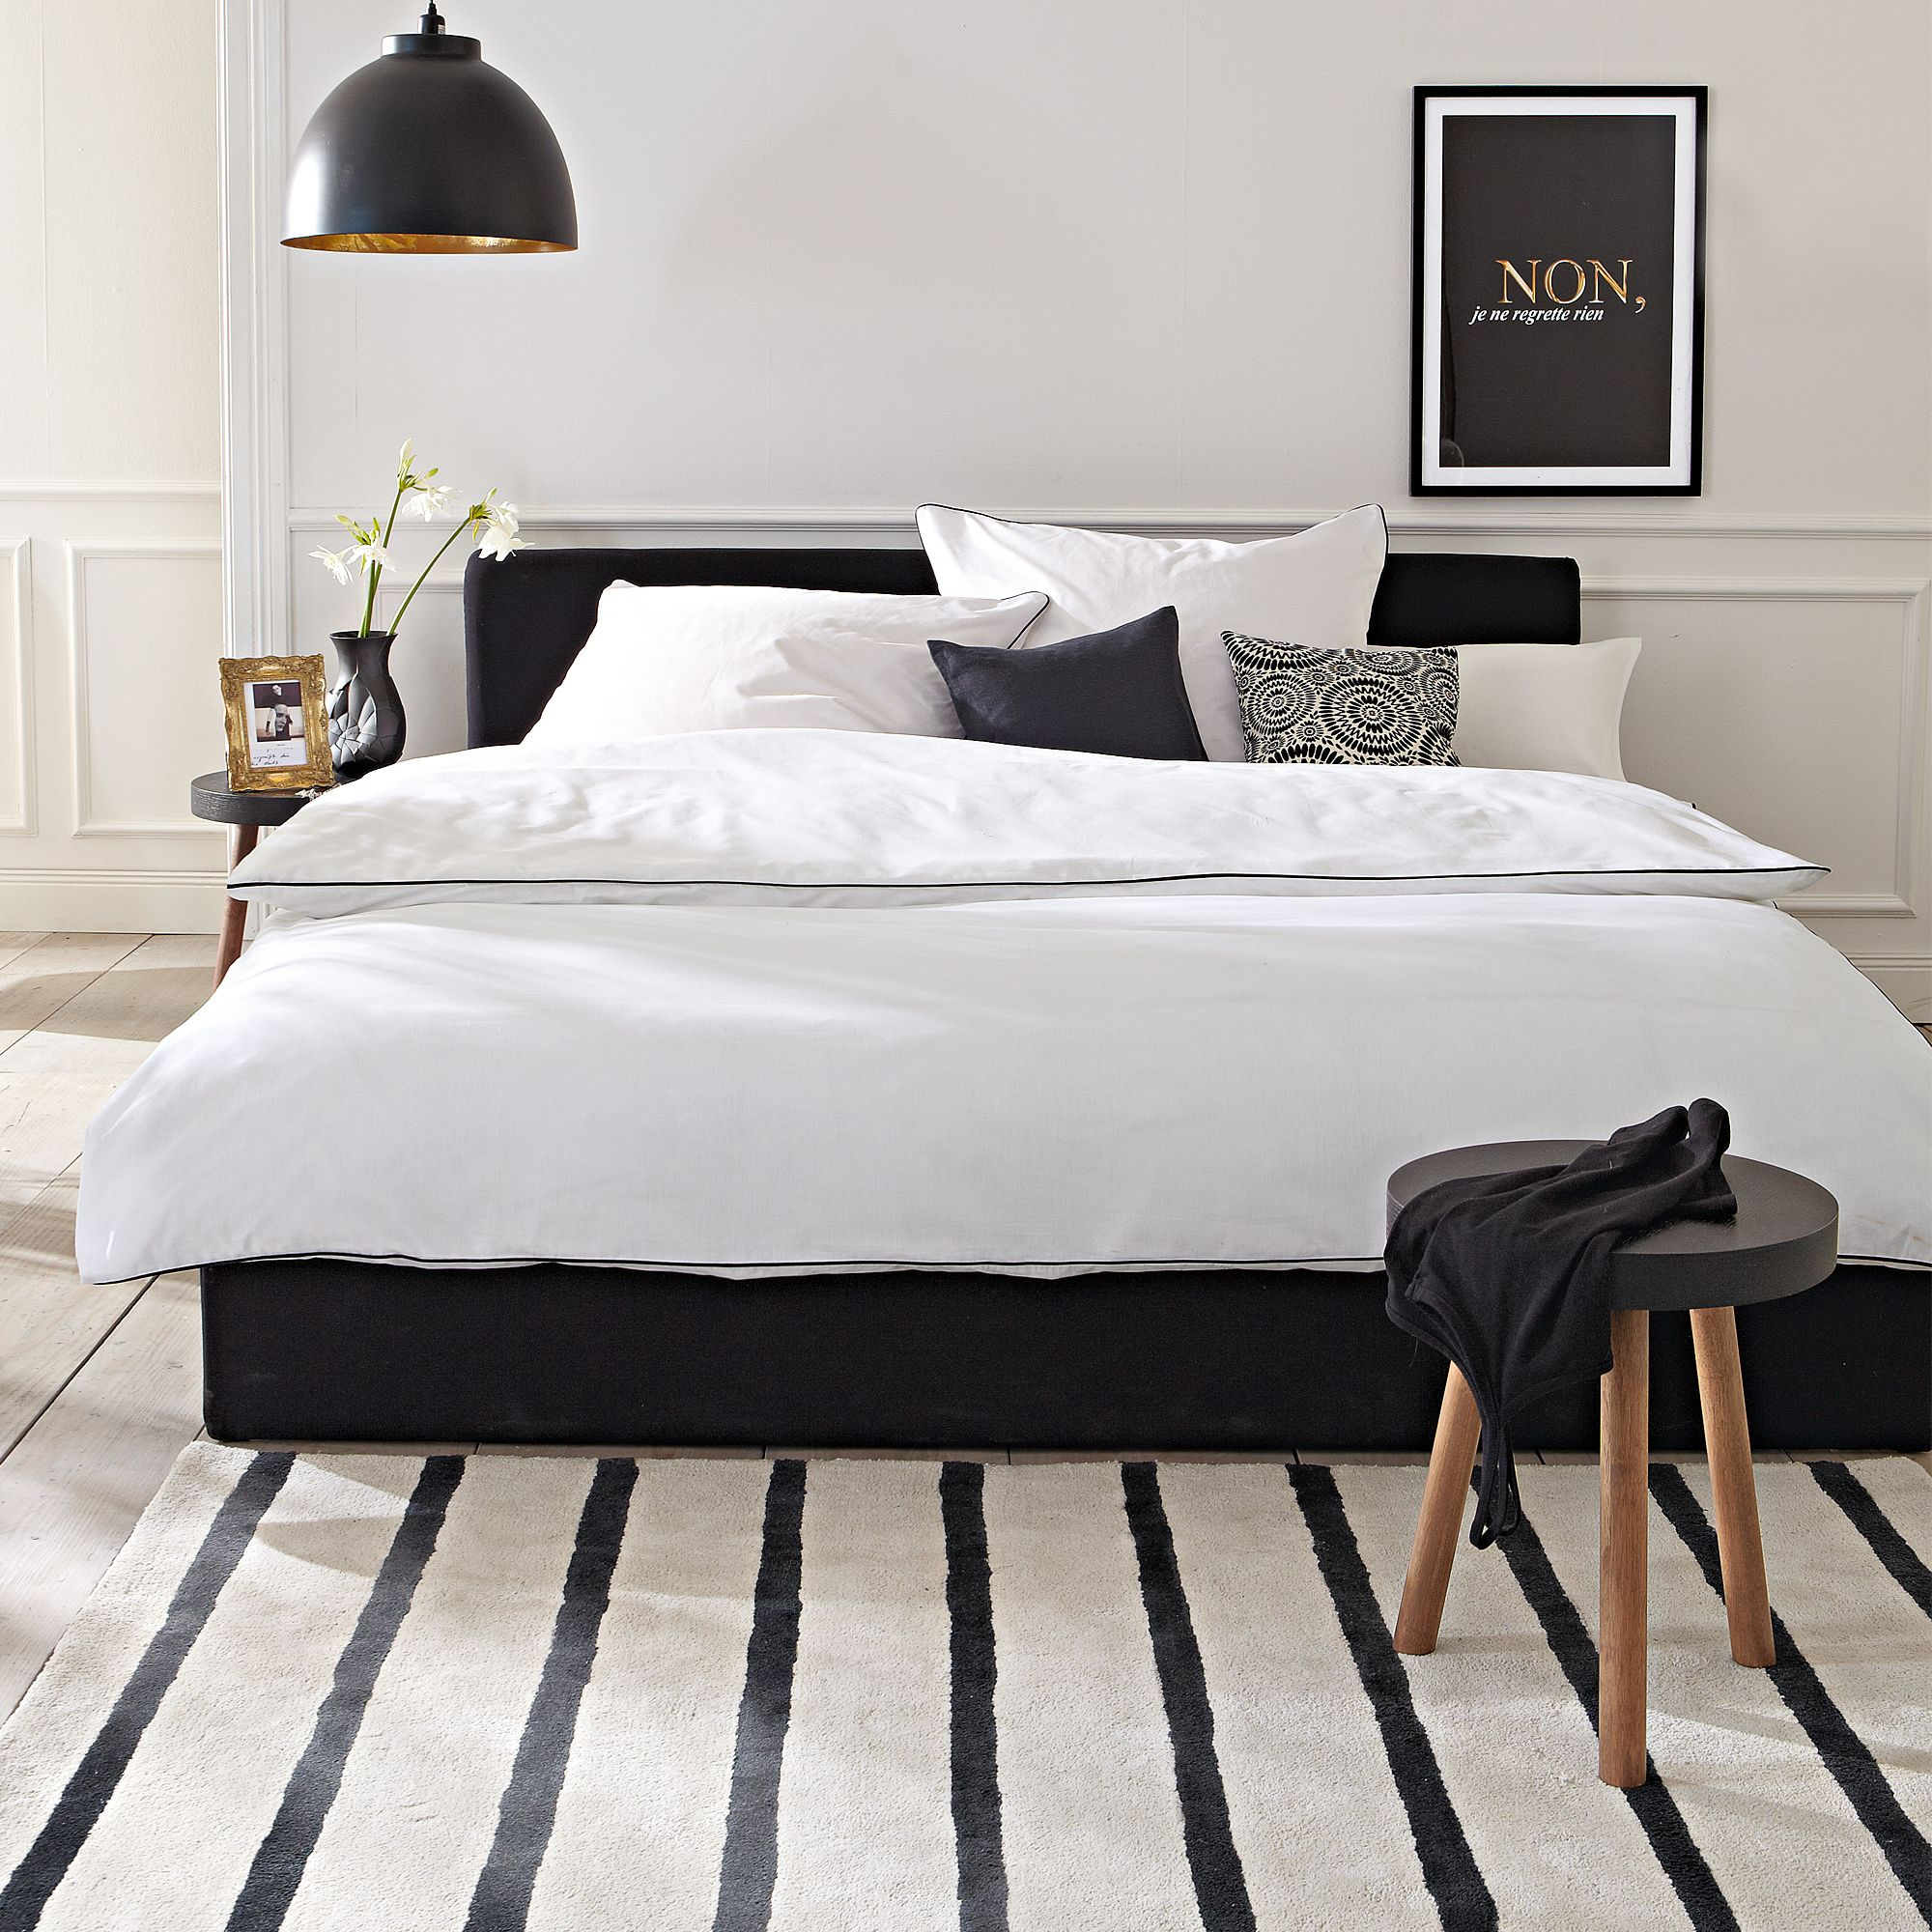 schwarzes Bett  black bed impressionen schlafzimmer   bedroom  workplace  Schla